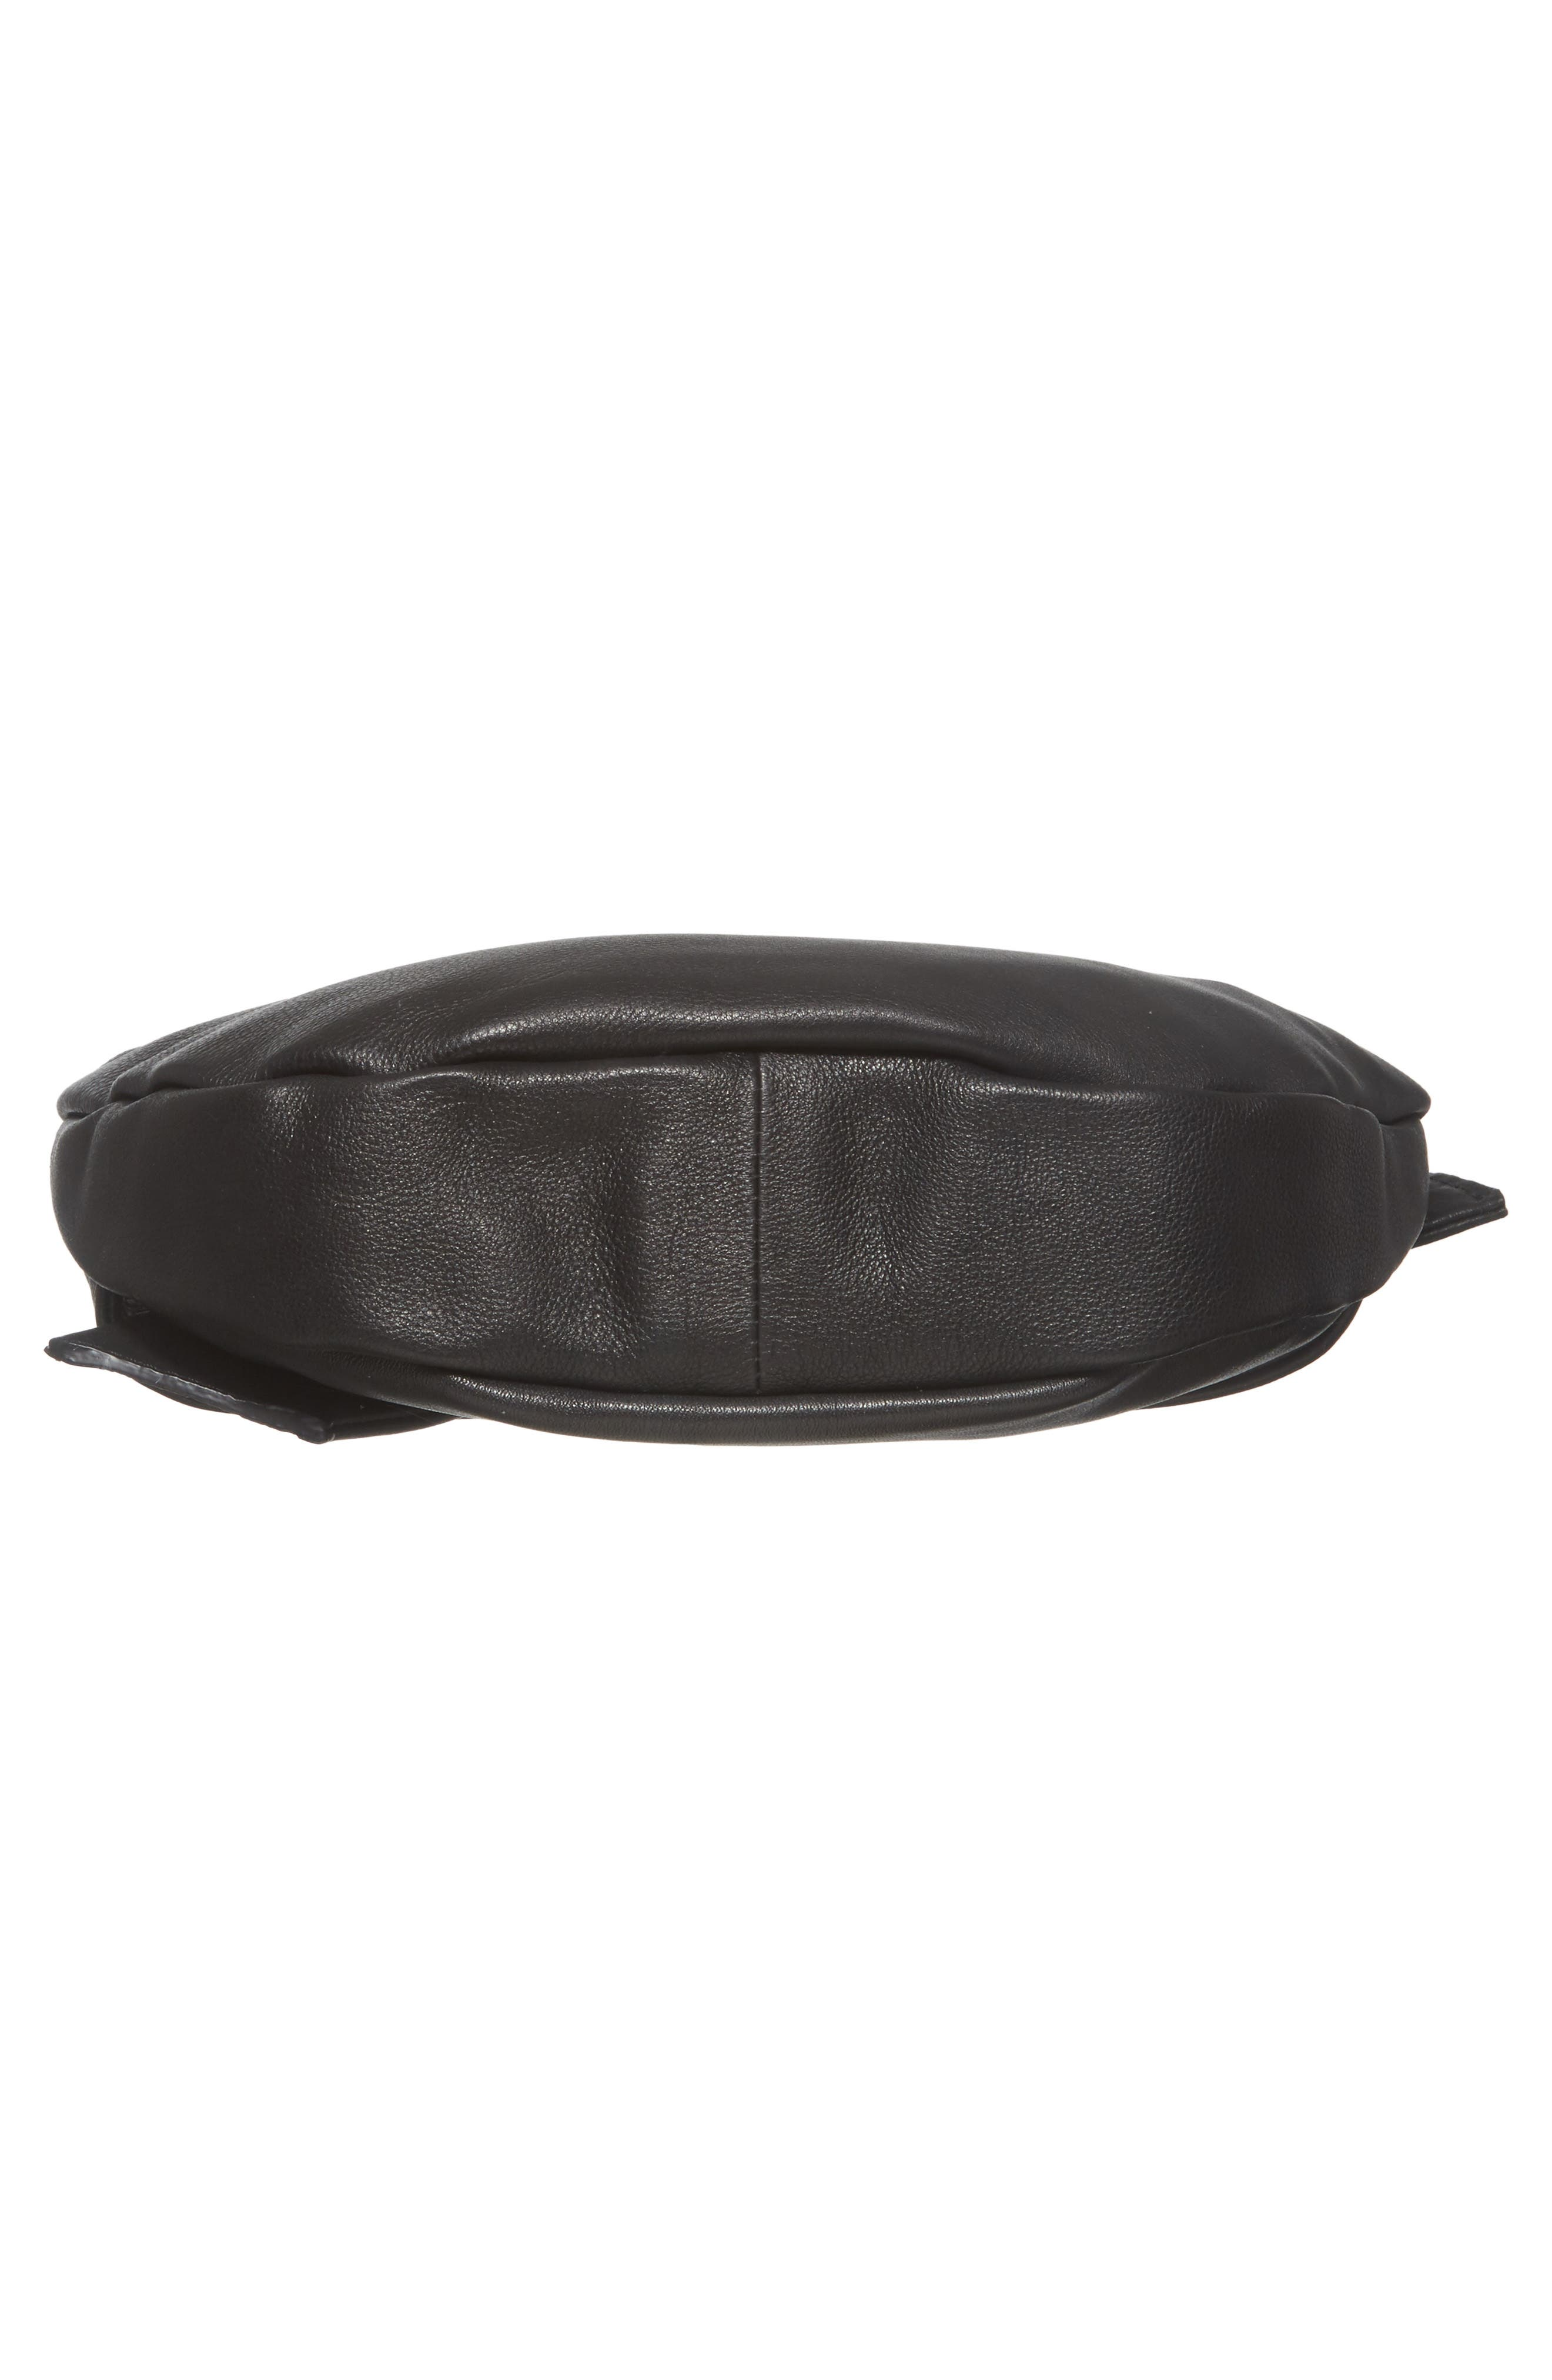 Jasmine Leather Clutch,                             Alternate thumbnail 11, color,